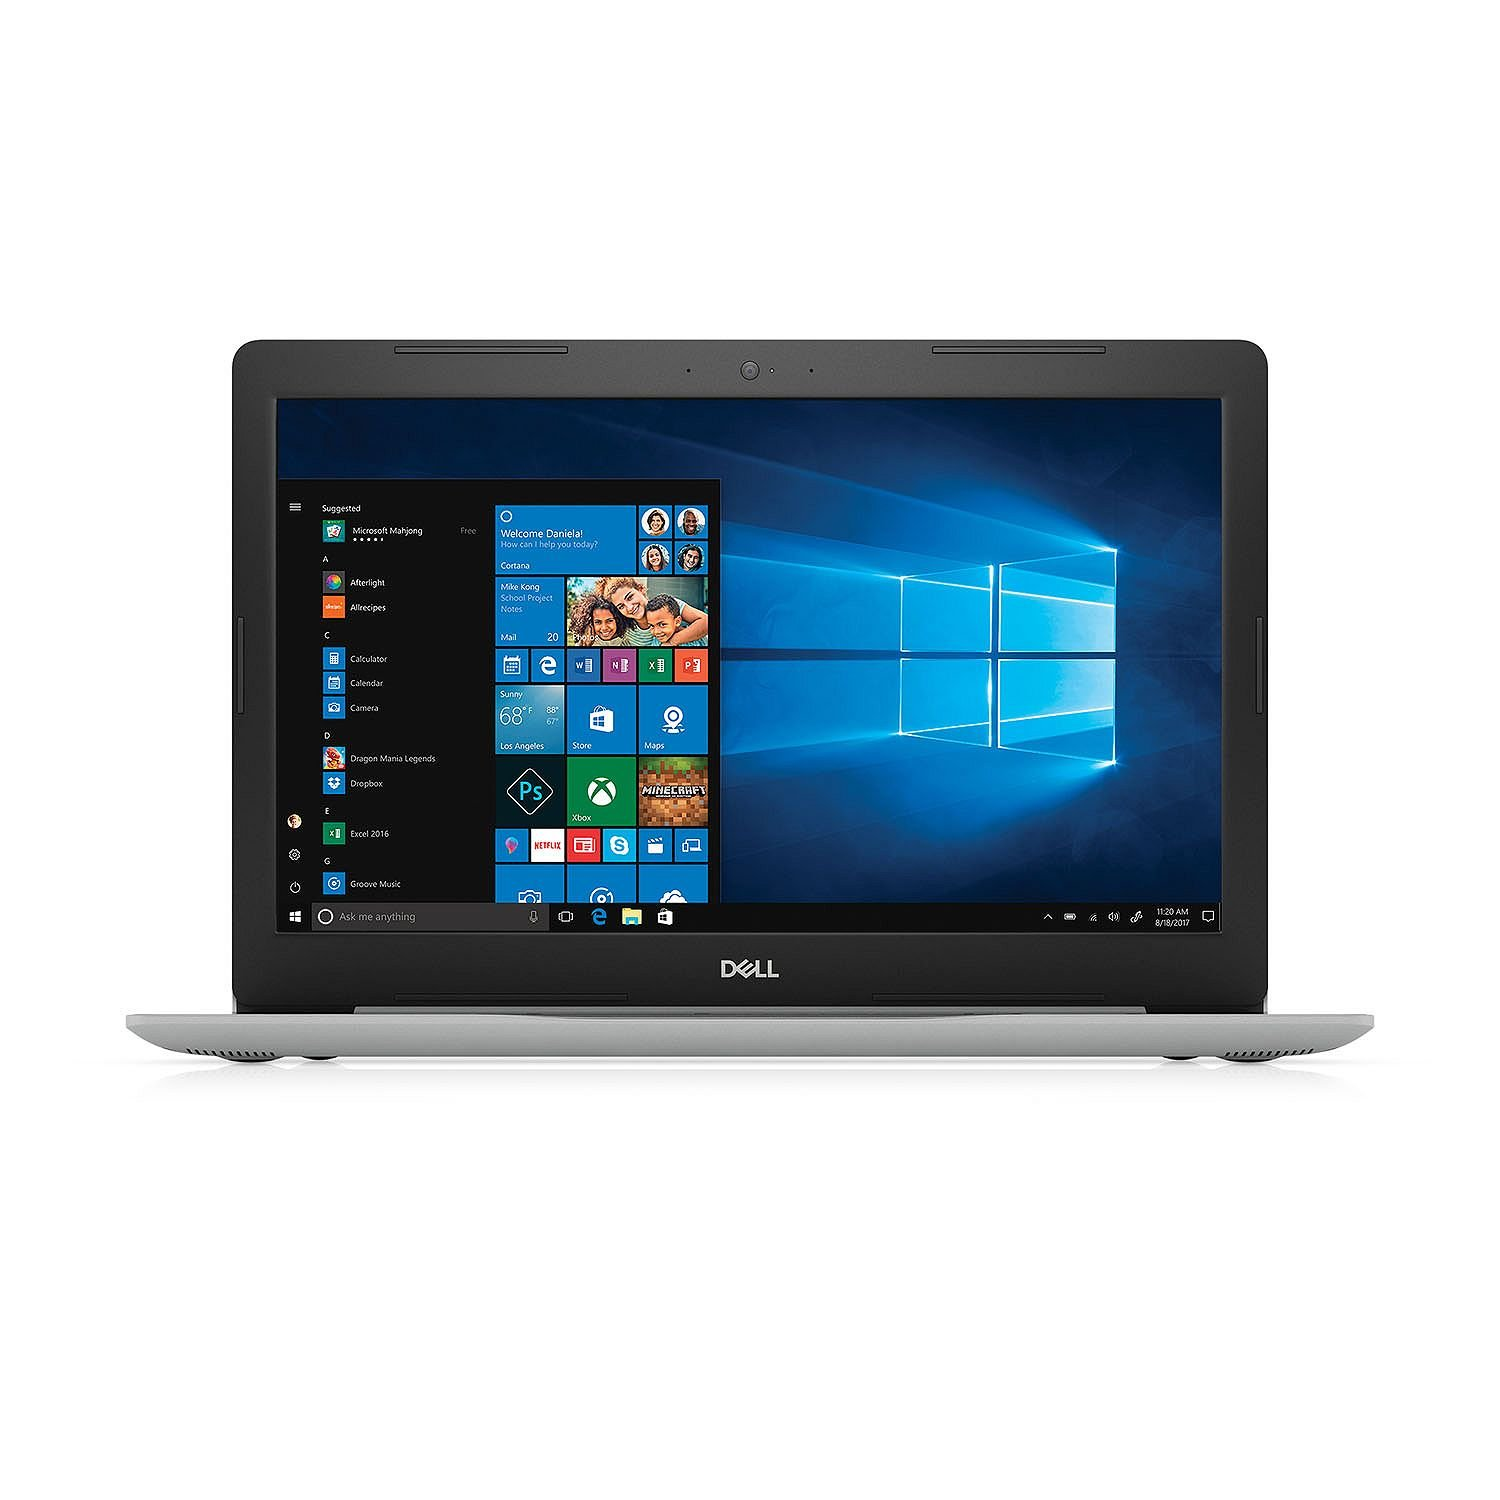 "2018 Newest Dell Inspiron 15.6"" Full HD Anti-Glare Laptop, 8th Intel Quad-Core i7-8550U 1.8GHz 16GB DDR4 256GB SSD+1TB HDD DVDRW MaxxAudio Backlit Keyboard 802.11ac Bluetooth HDMI USB Type-C Win 10"